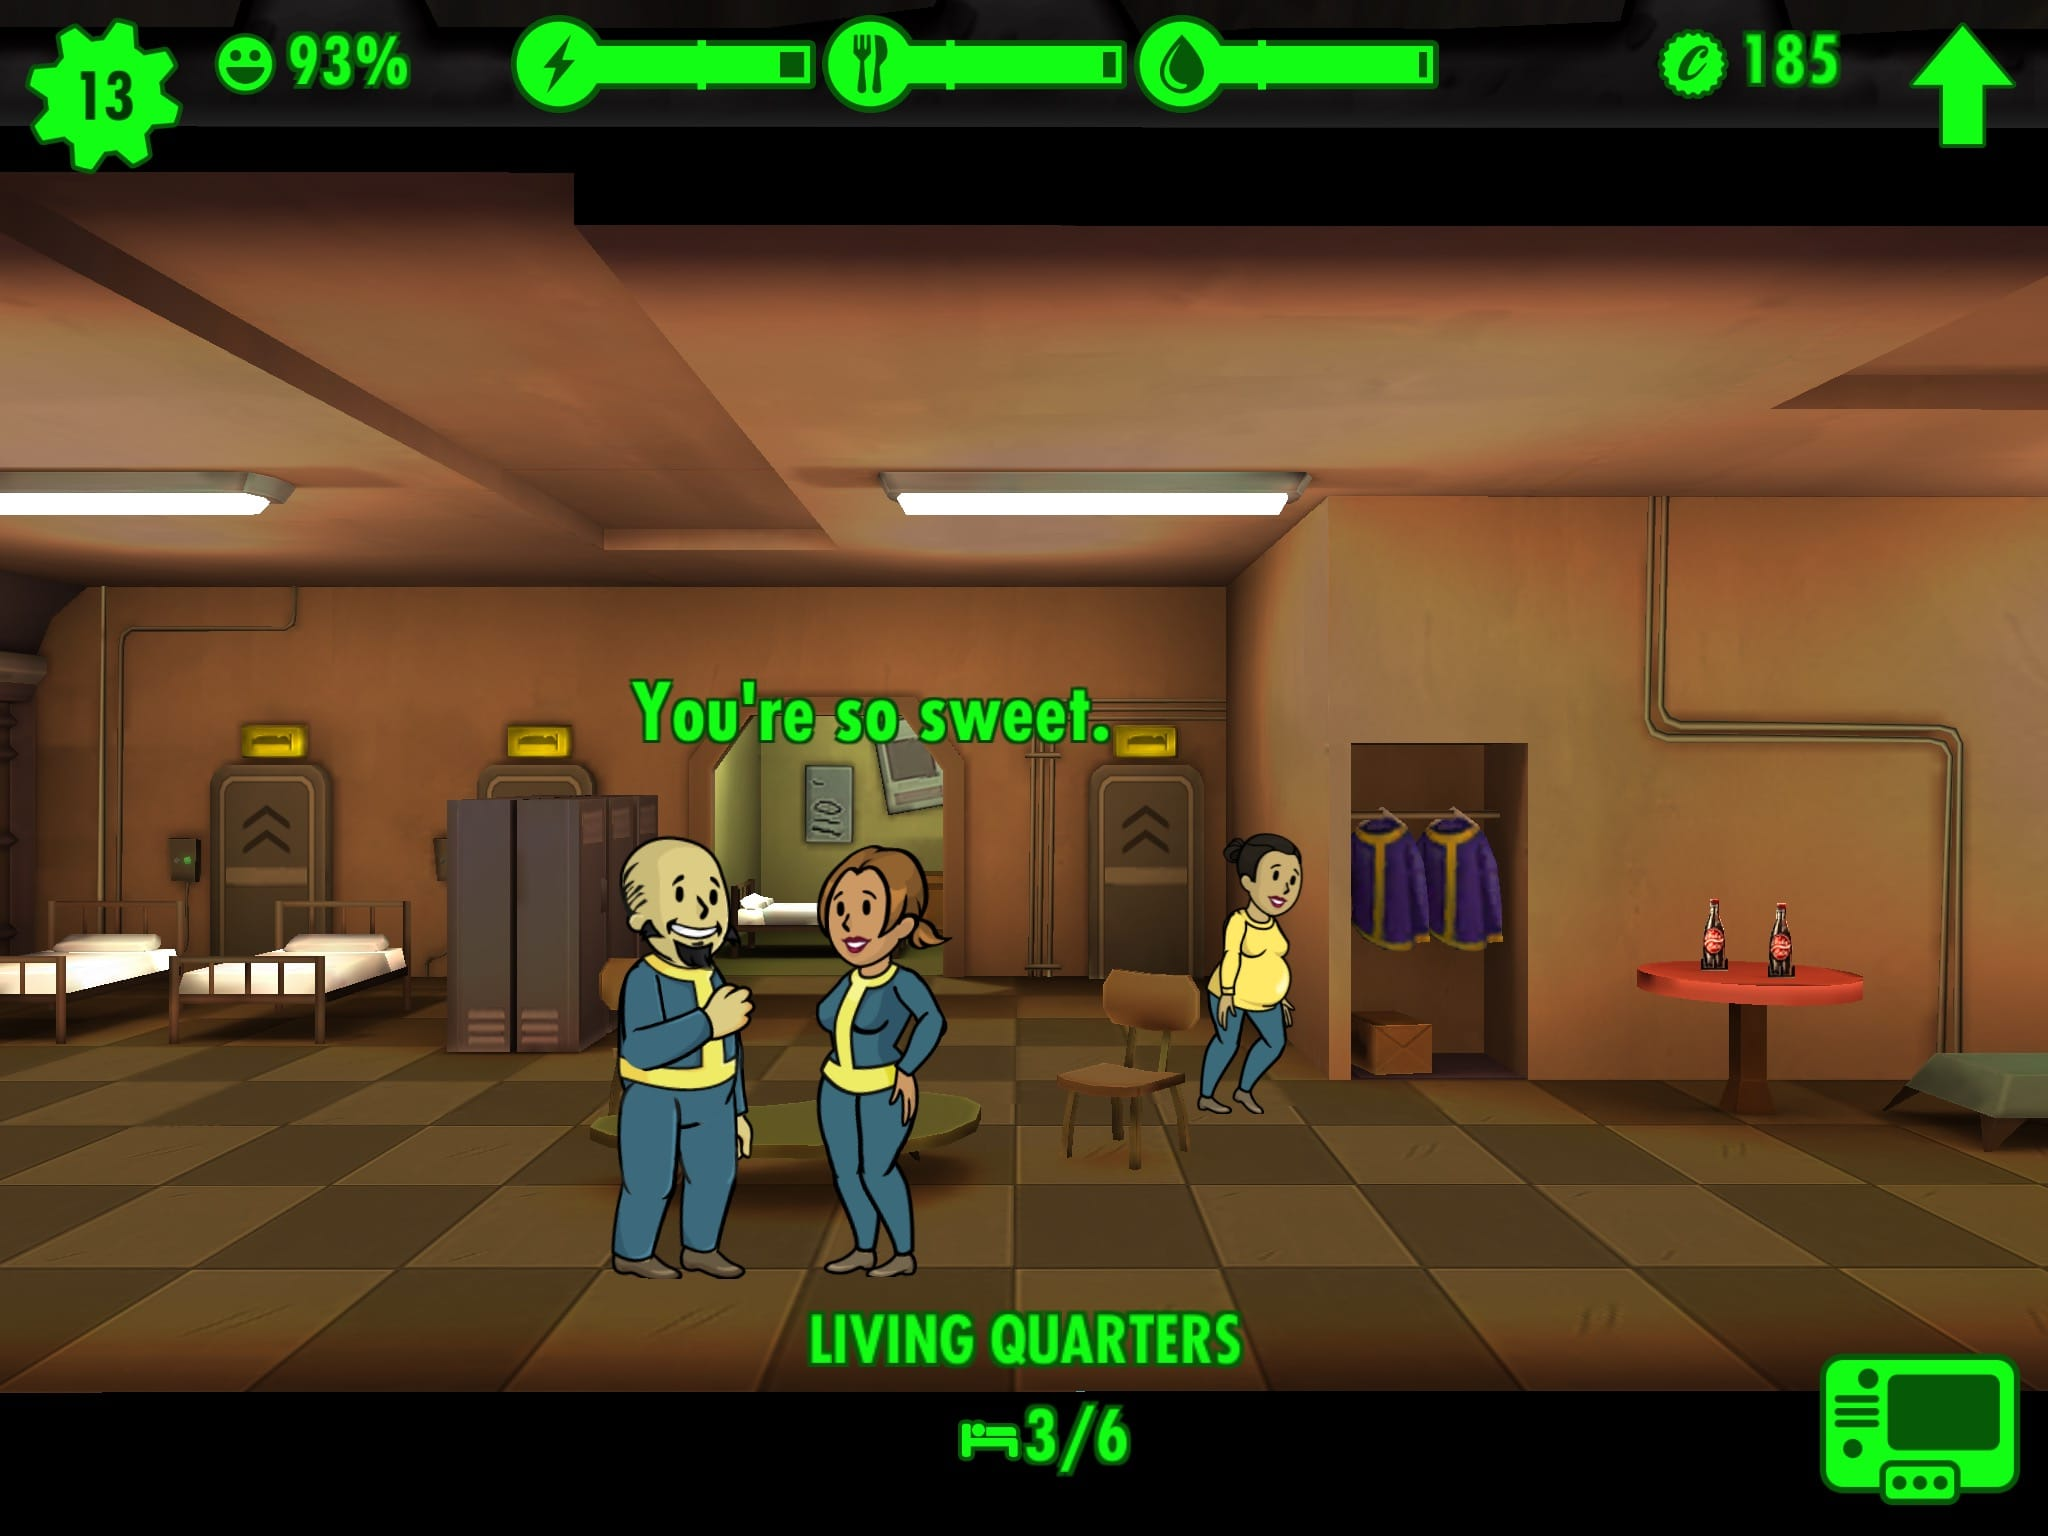 Fallout_Shelter_IMG_1520-hero